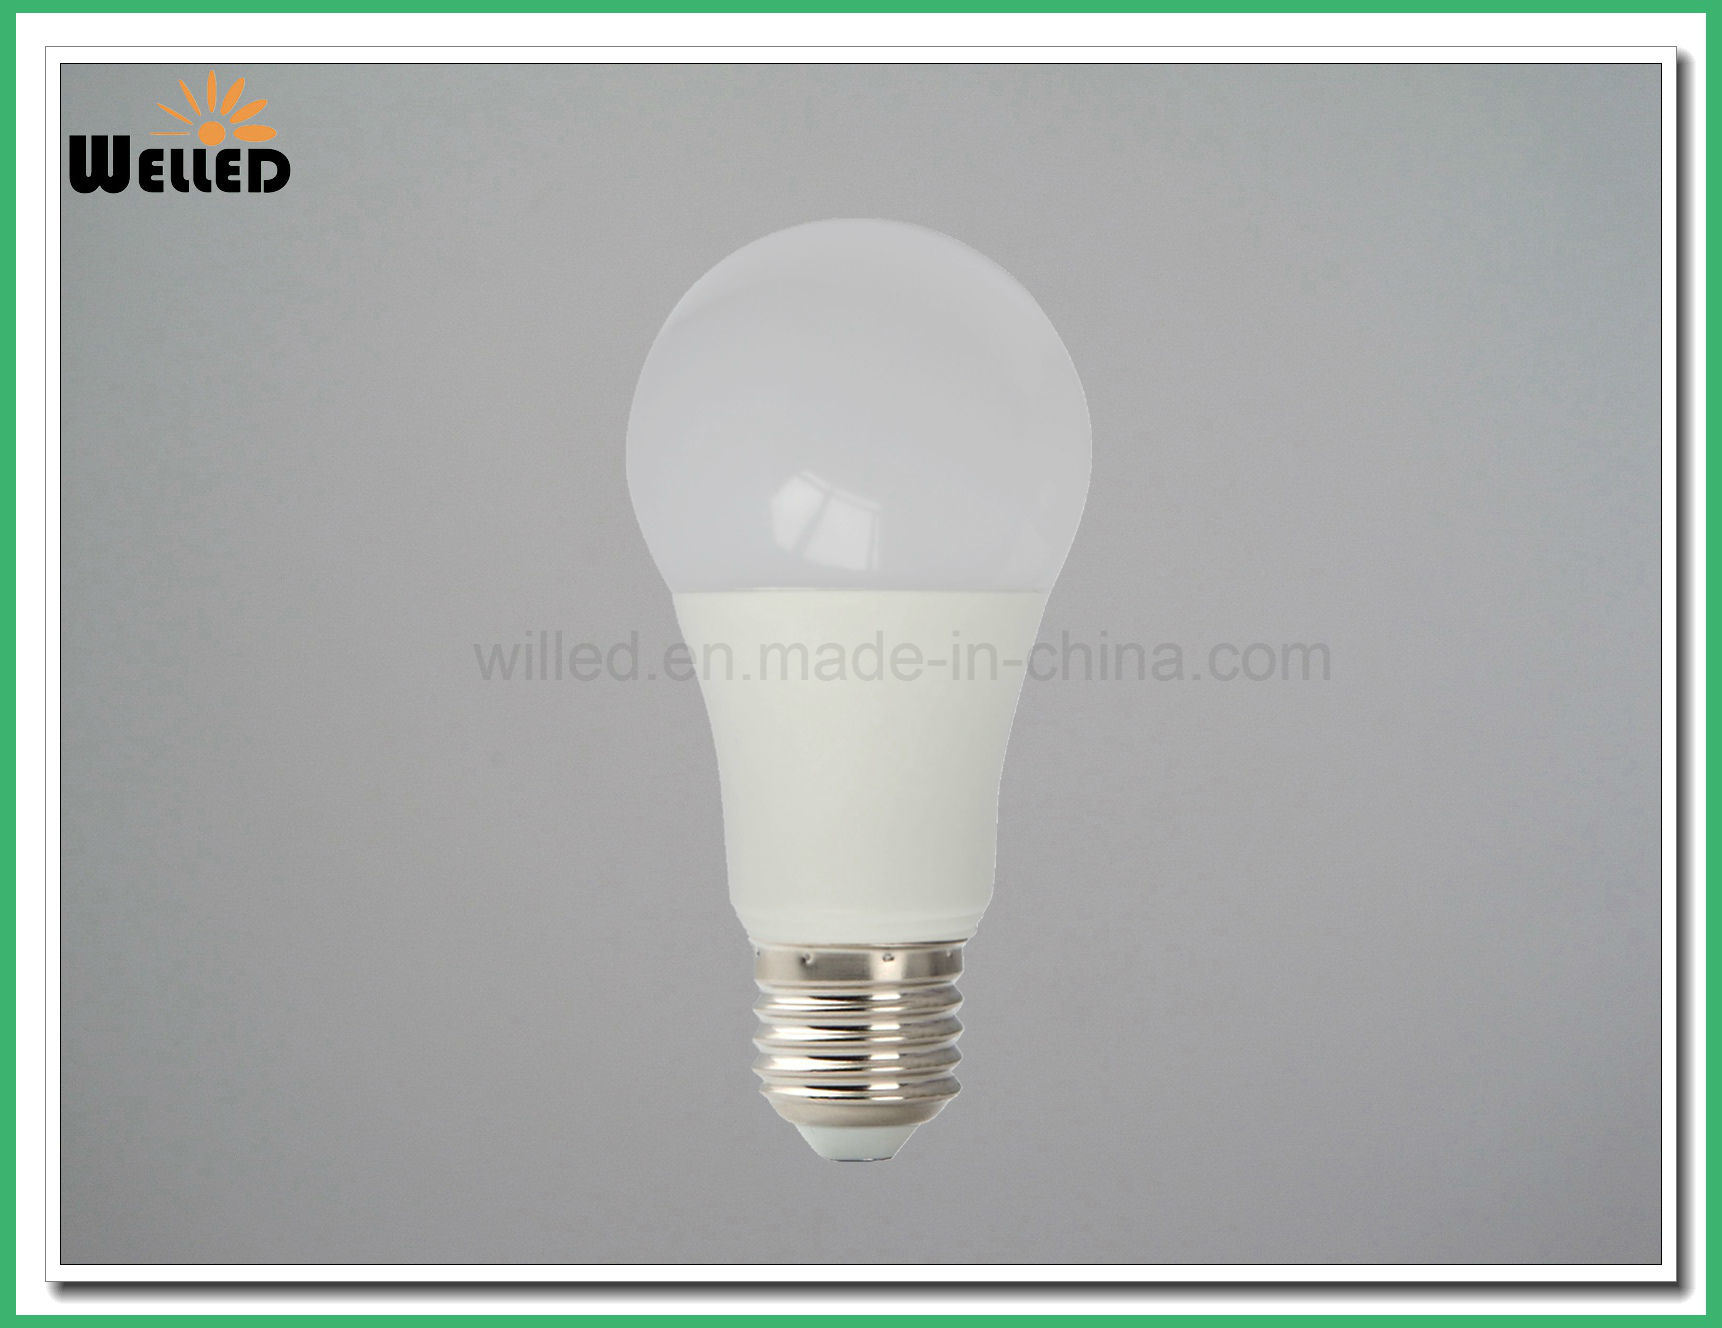 A60 Aluminum Plastic LED Incandescent Bulb Light 10W SMD2835 E27 B22 LED Lamp for Incandescent Replacements